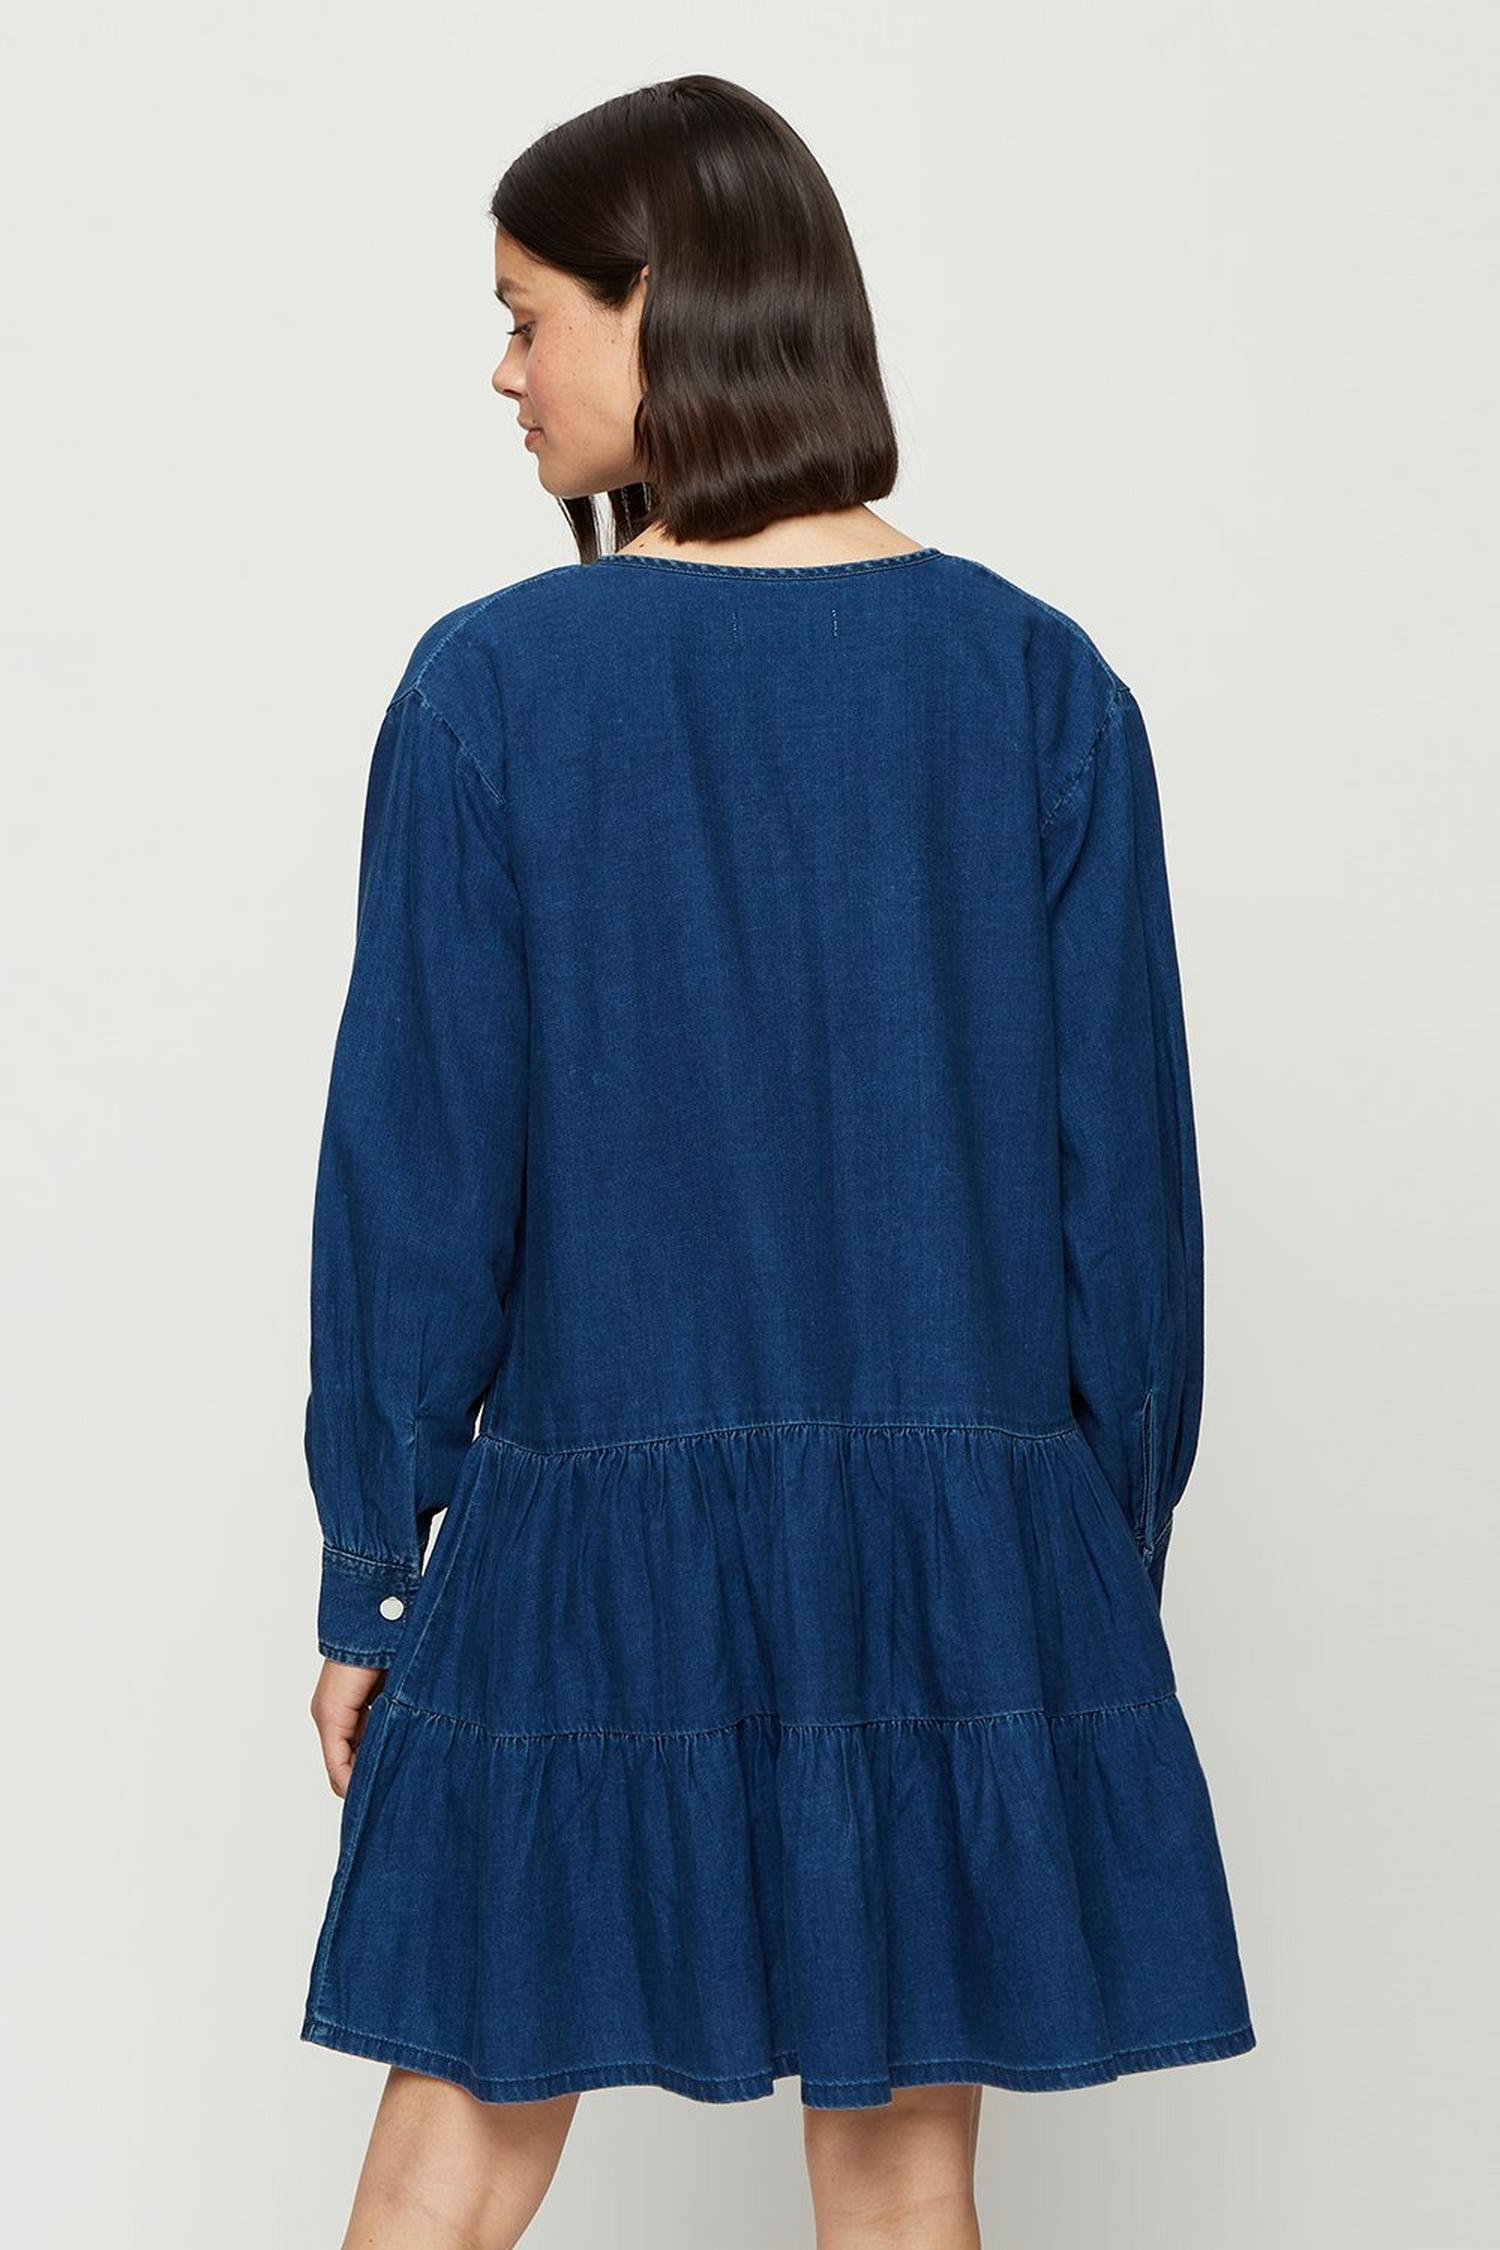 132 Indigo Smock Dress image number 3